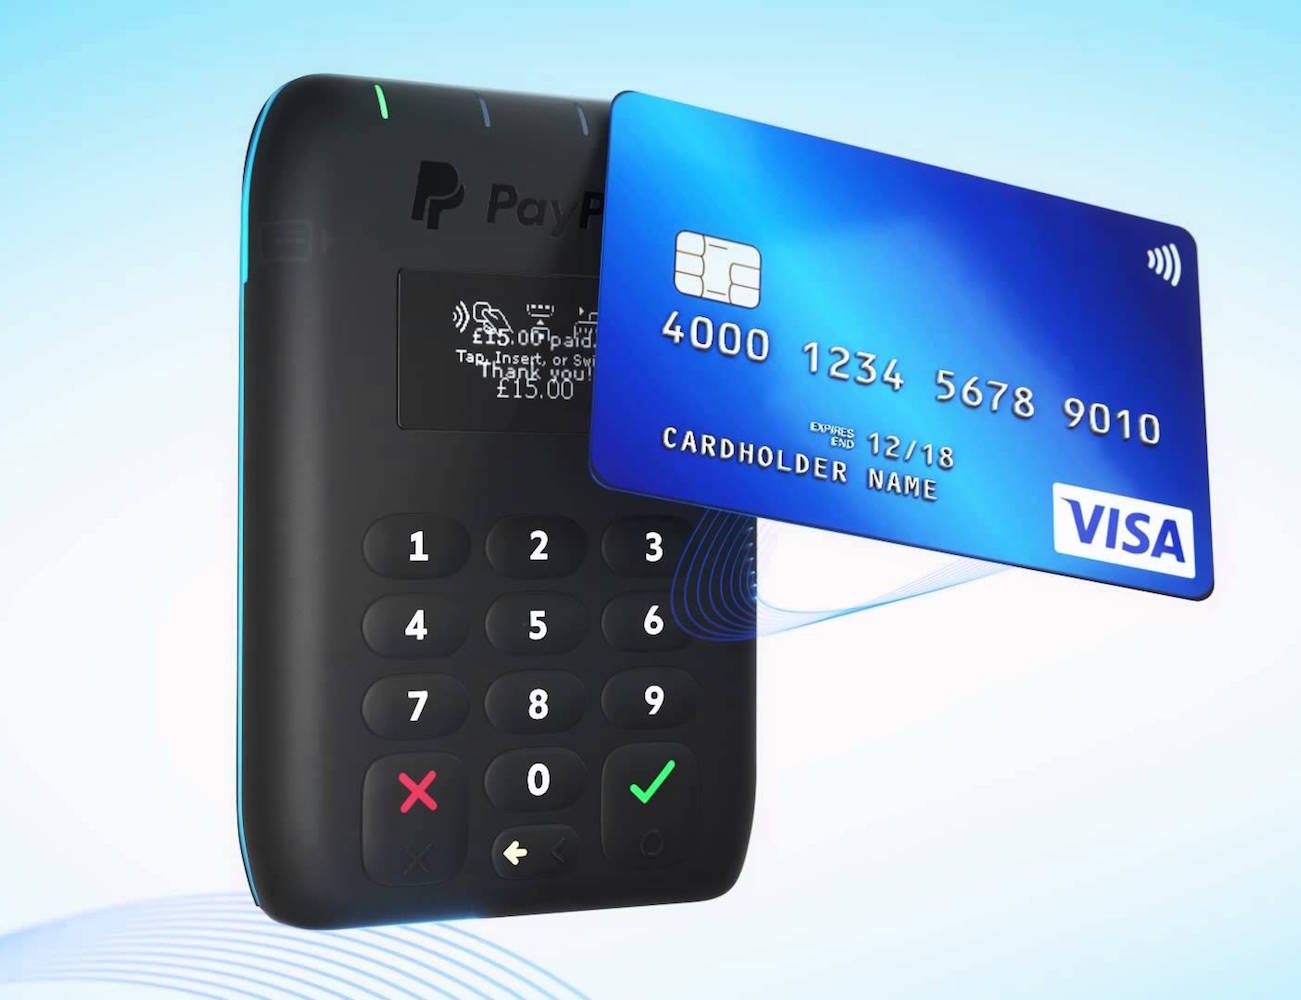 paypal-here-mobile-card-reader-01